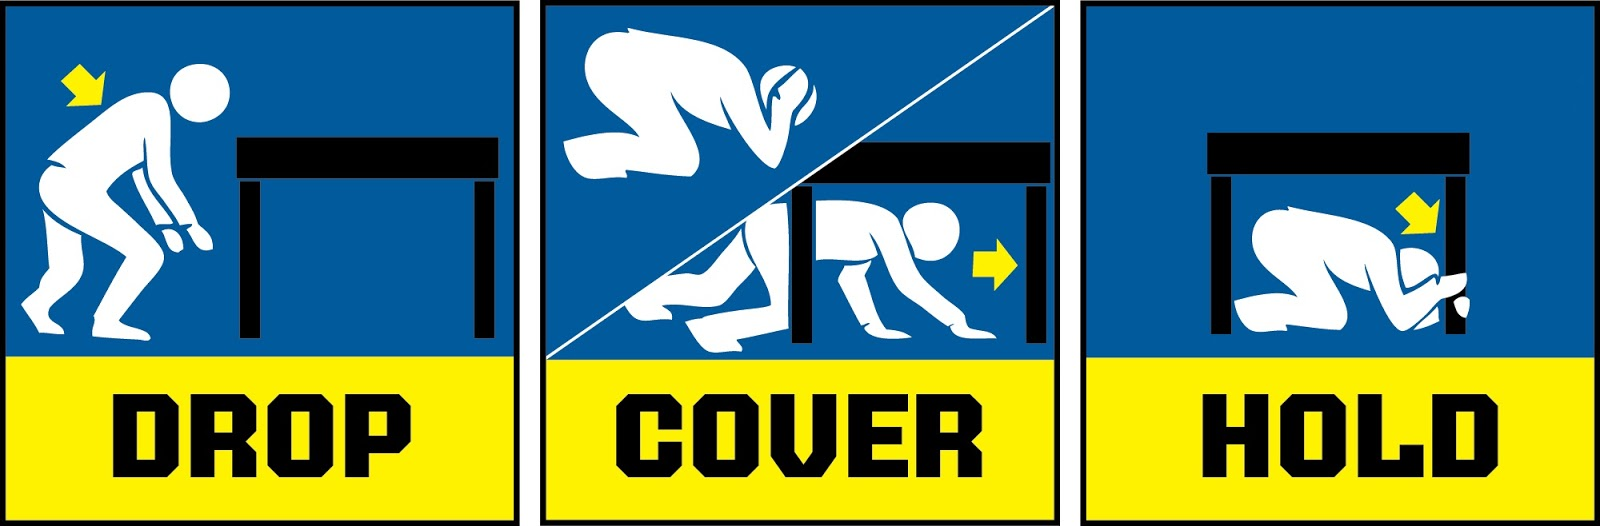 Earthquake safety clipart 1 » Clipart Station.